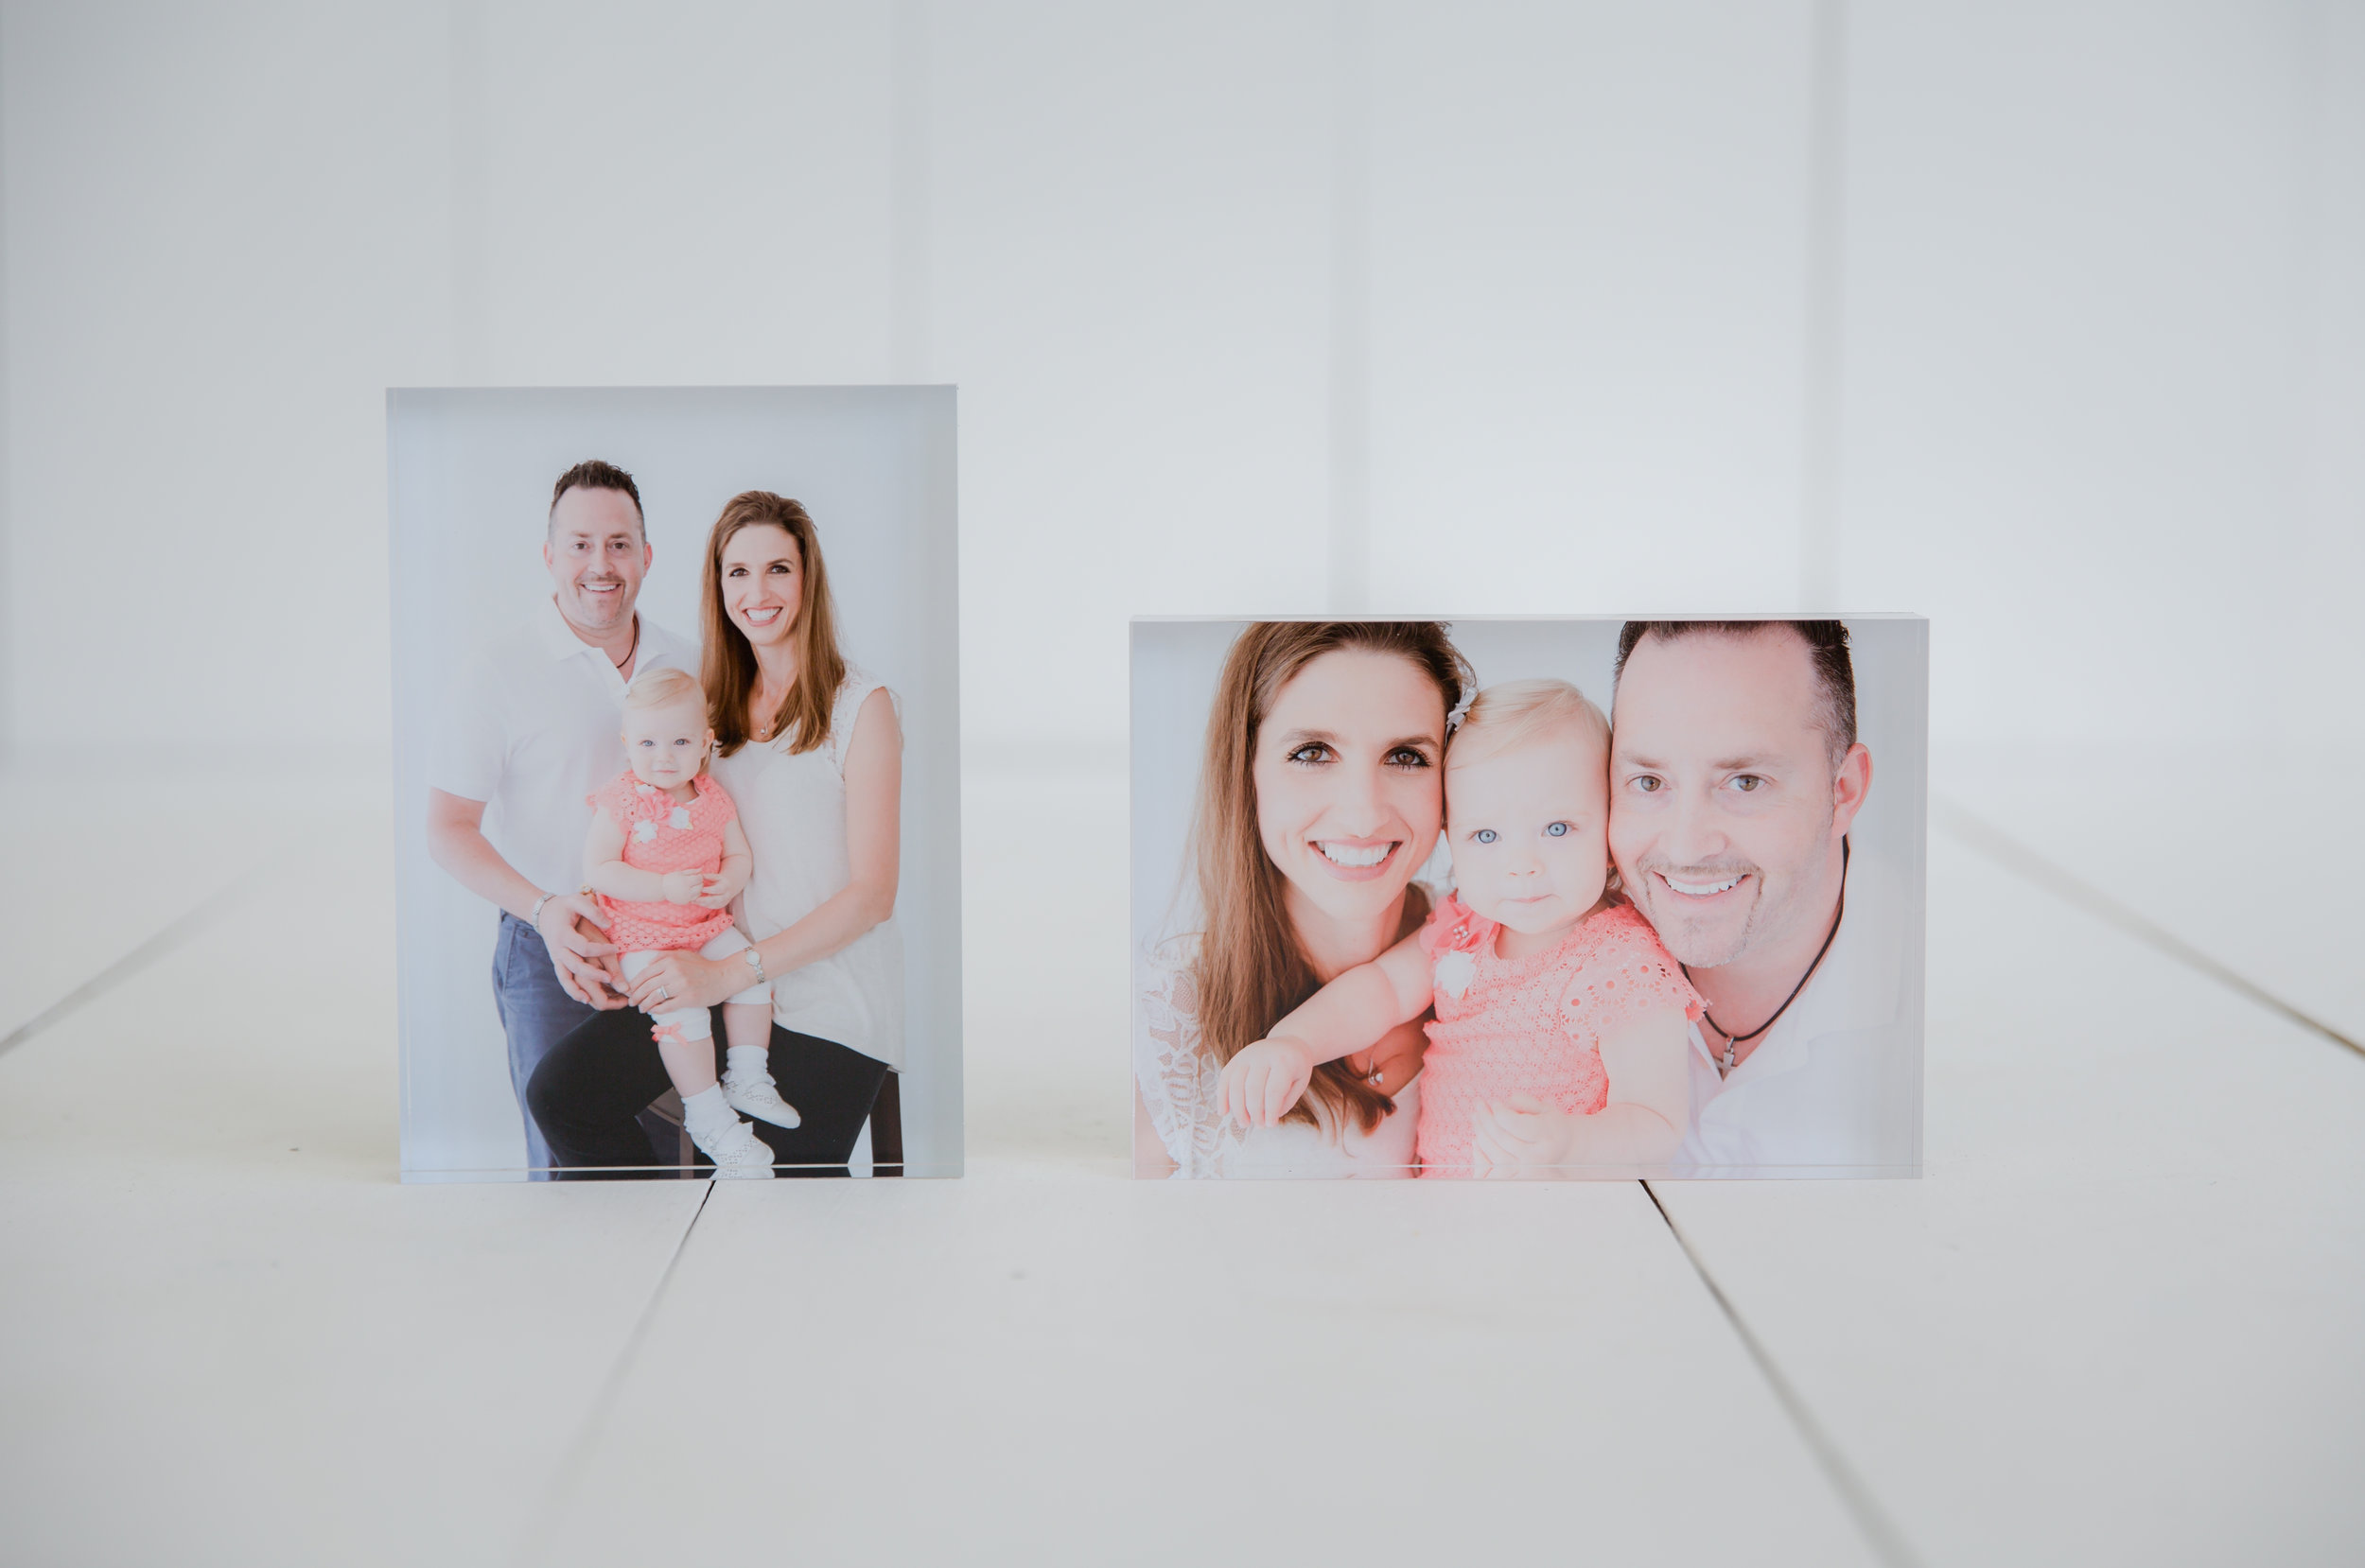 custom photography in new jersey who offers acrylic blocks